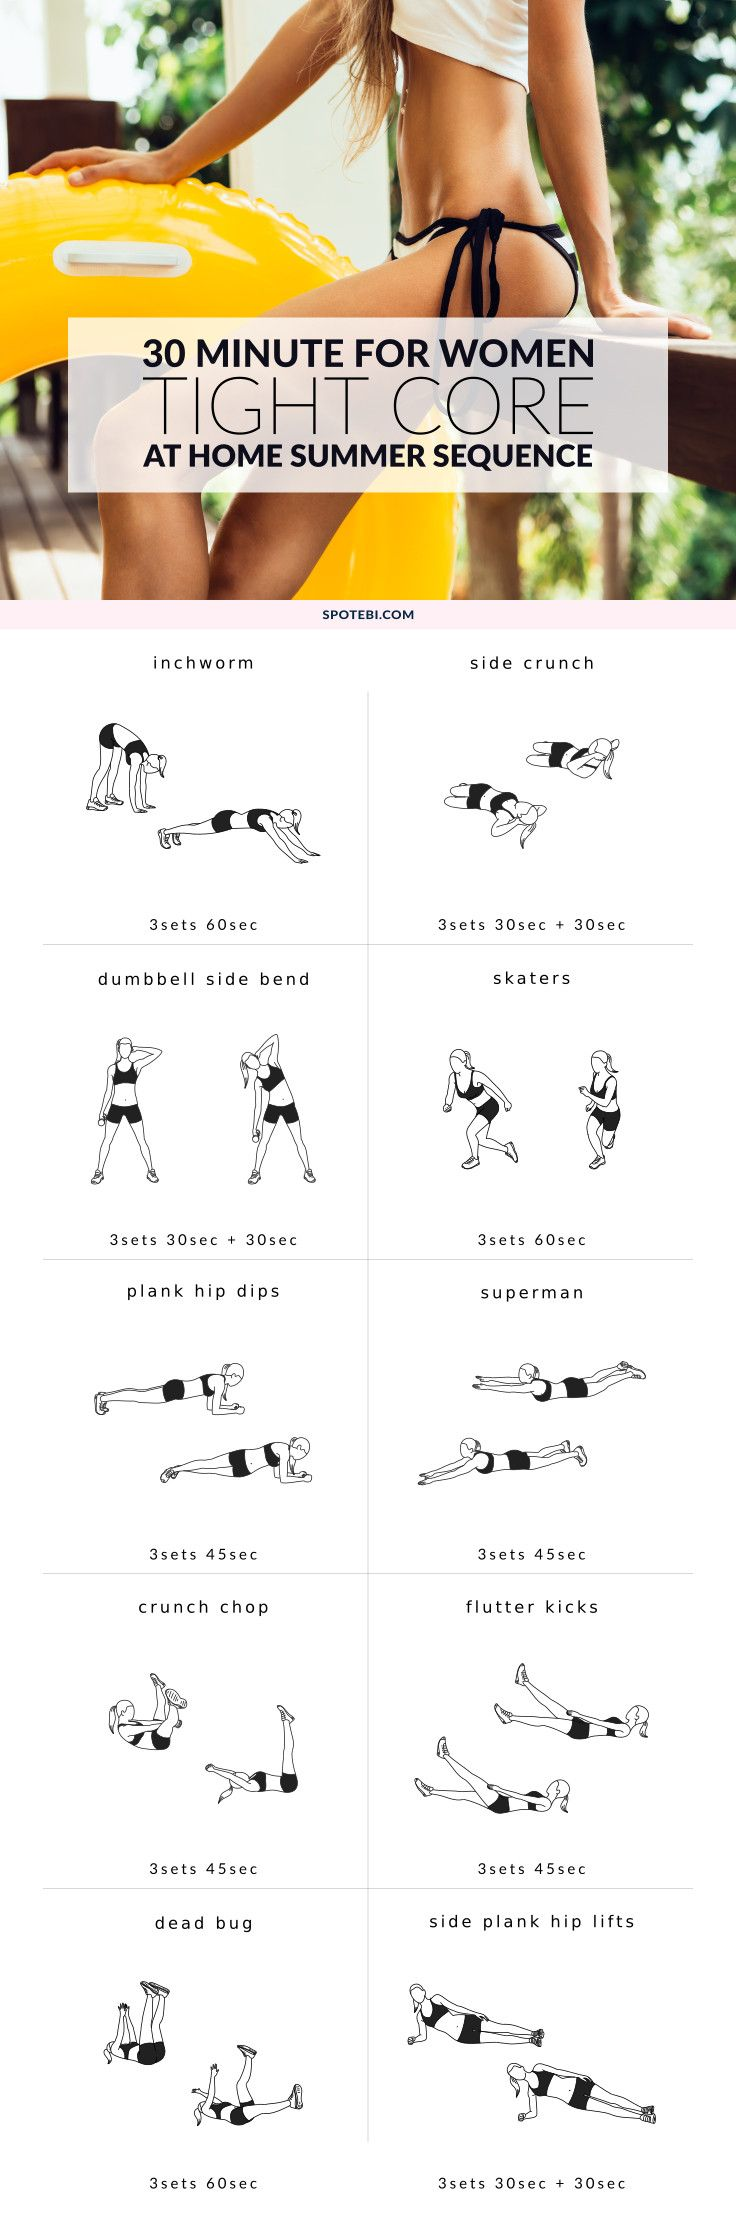 30 Minute Tight Core Summer Workout For Women Get Fit Pinterest Mh Sixpack Challenge The Dumbbell Circuit To A Toned Belly And Small Waist Need Target All Layers